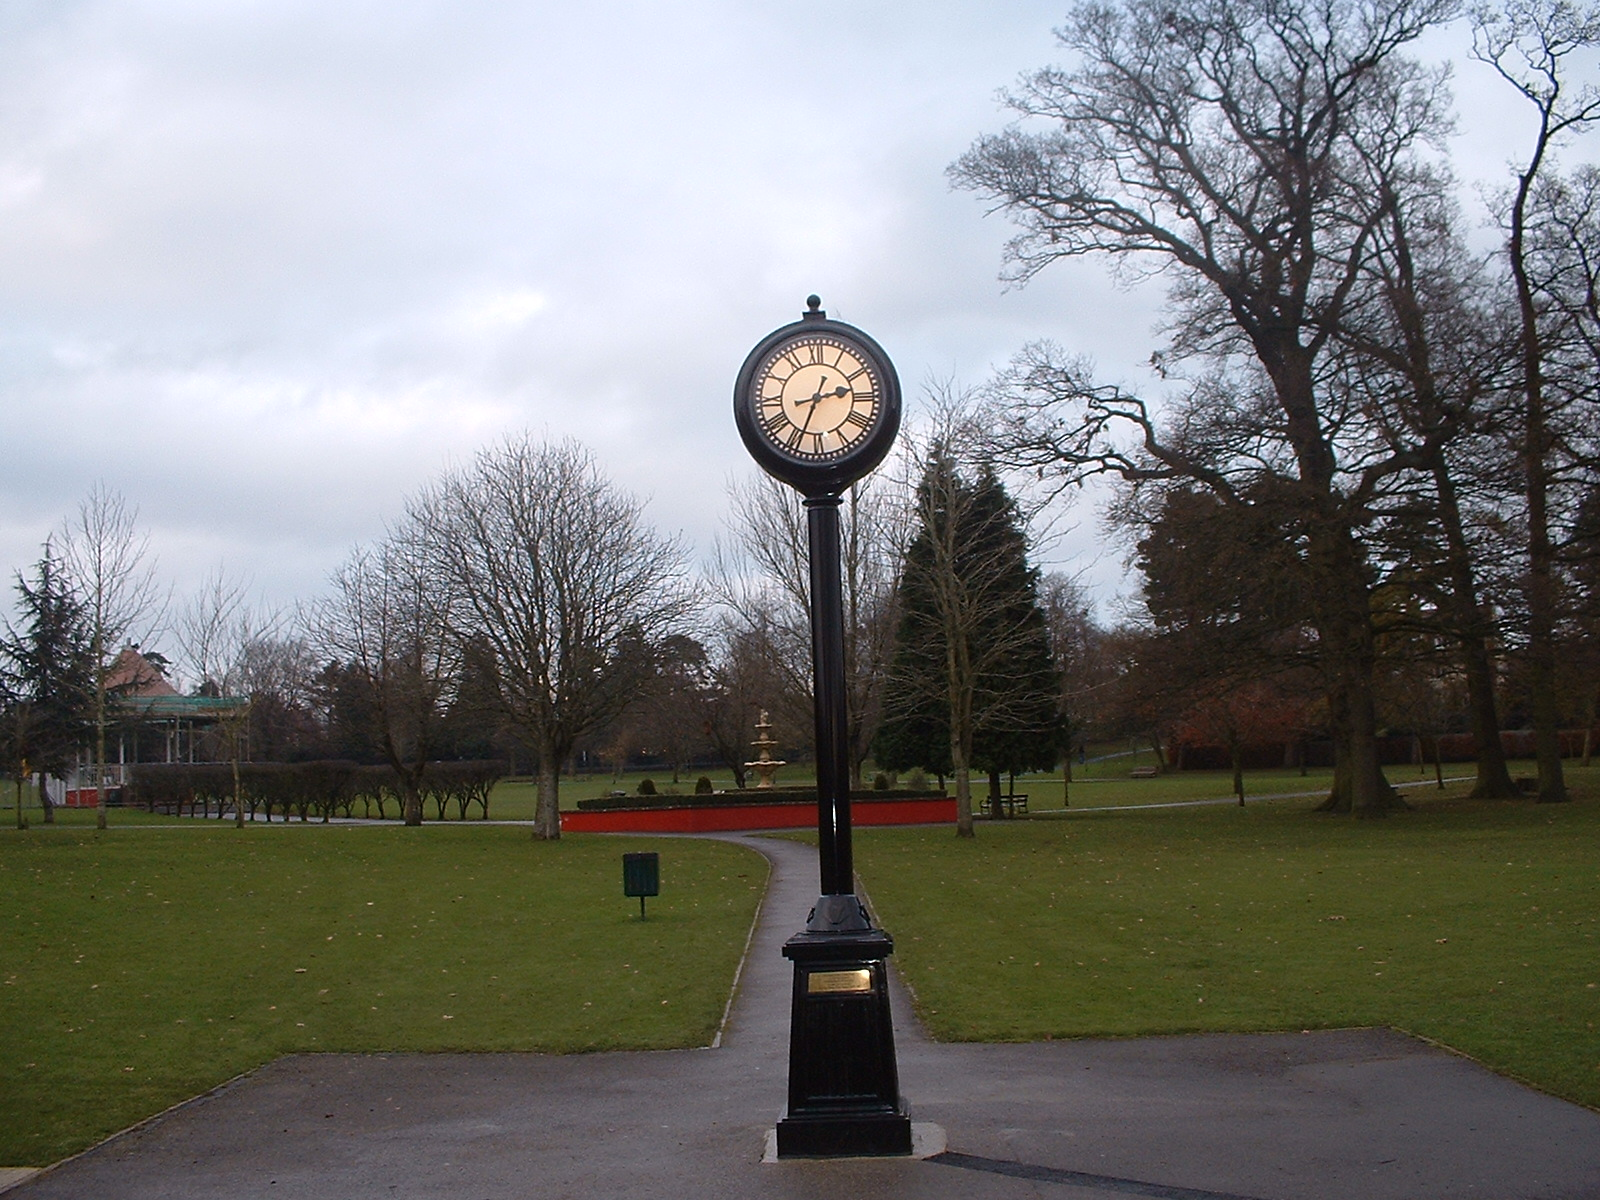 Pillar clock in a park